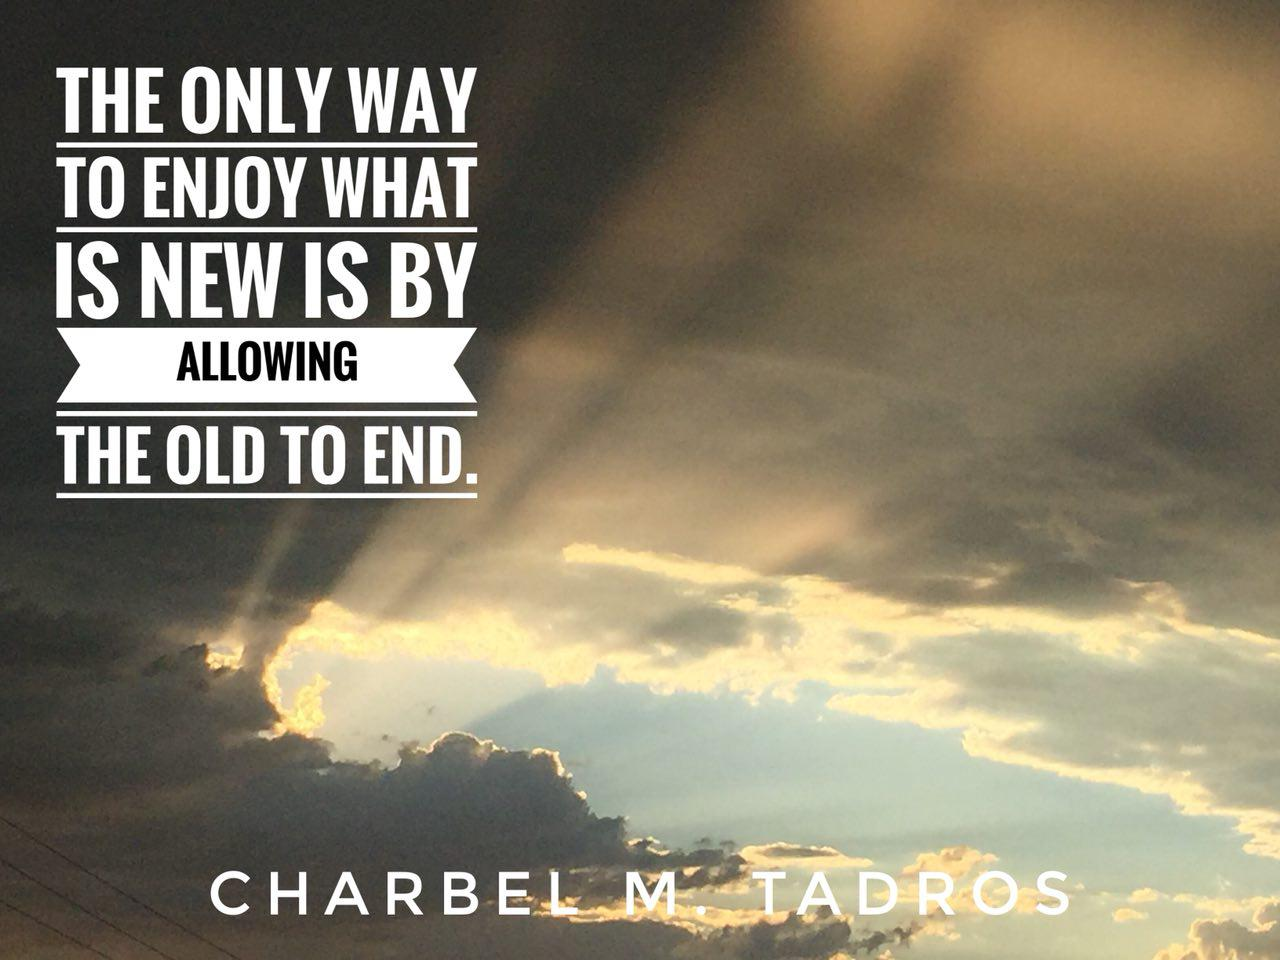 the only way to enjoy what is new is by allowing what is old to end.